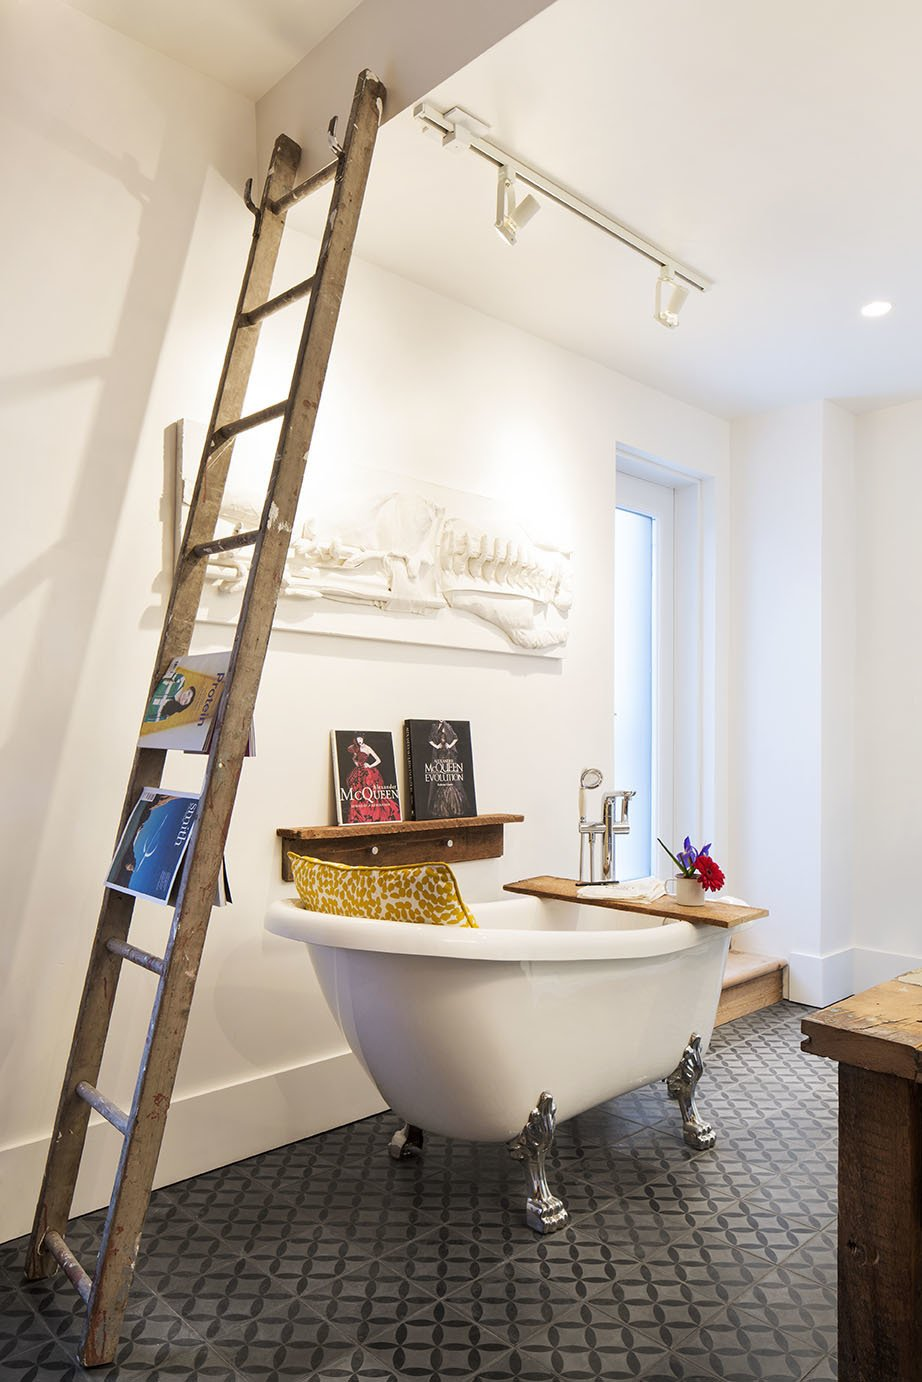 Bath Room and Freestanding Tub A new clawfoot tub sits next to an old wooden ladder that serves as a towel and magazine rack.  An Old Row House in Montreal Gets a Colorful Modern Upgrade by Sarah Akkoush